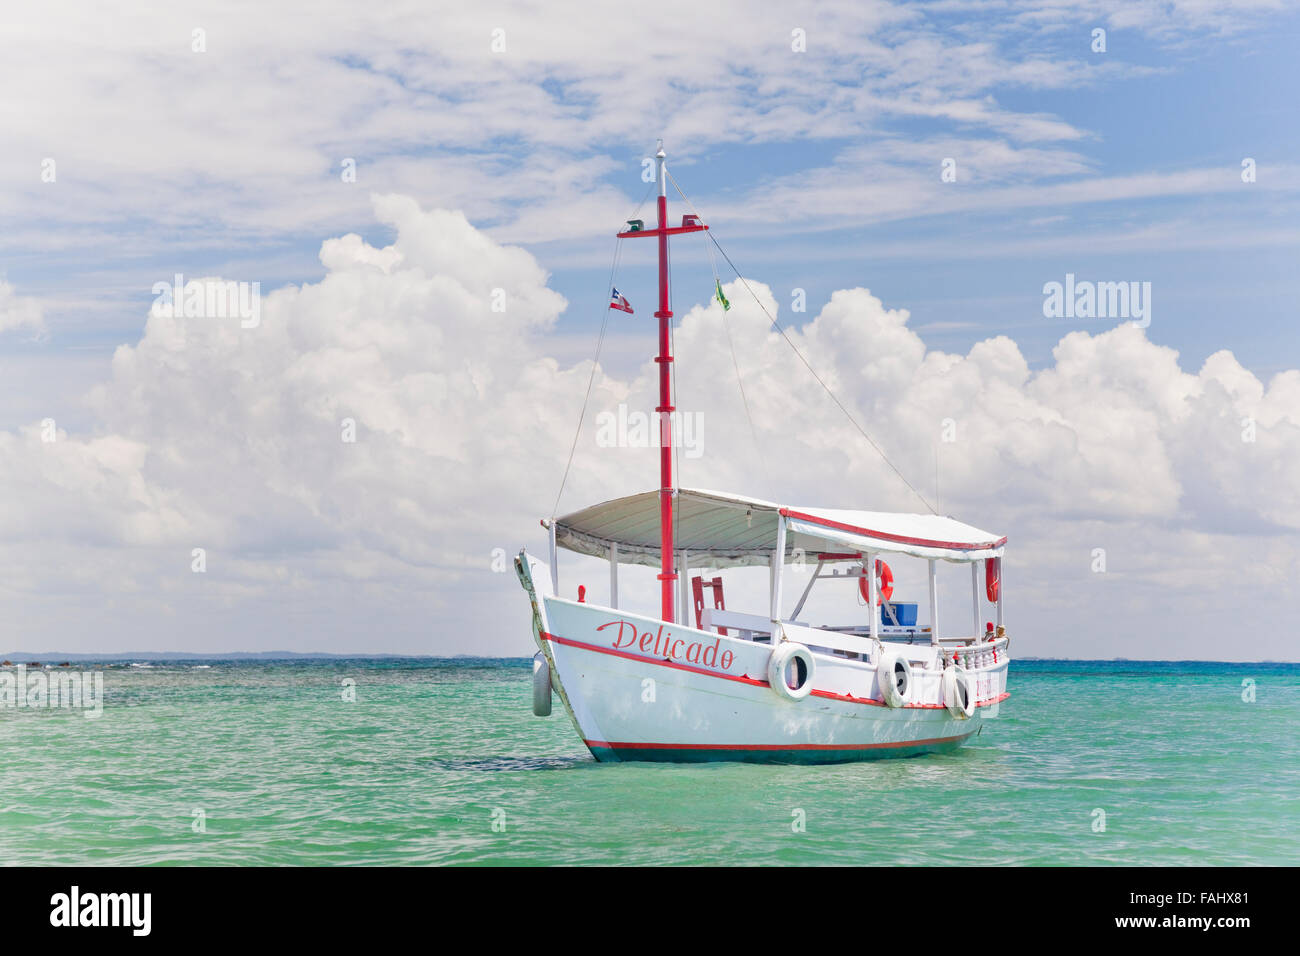 The 'Delicado' at anchor near Morro de São Paulo, in Brazil's northern state of Bahia. - Stock Image